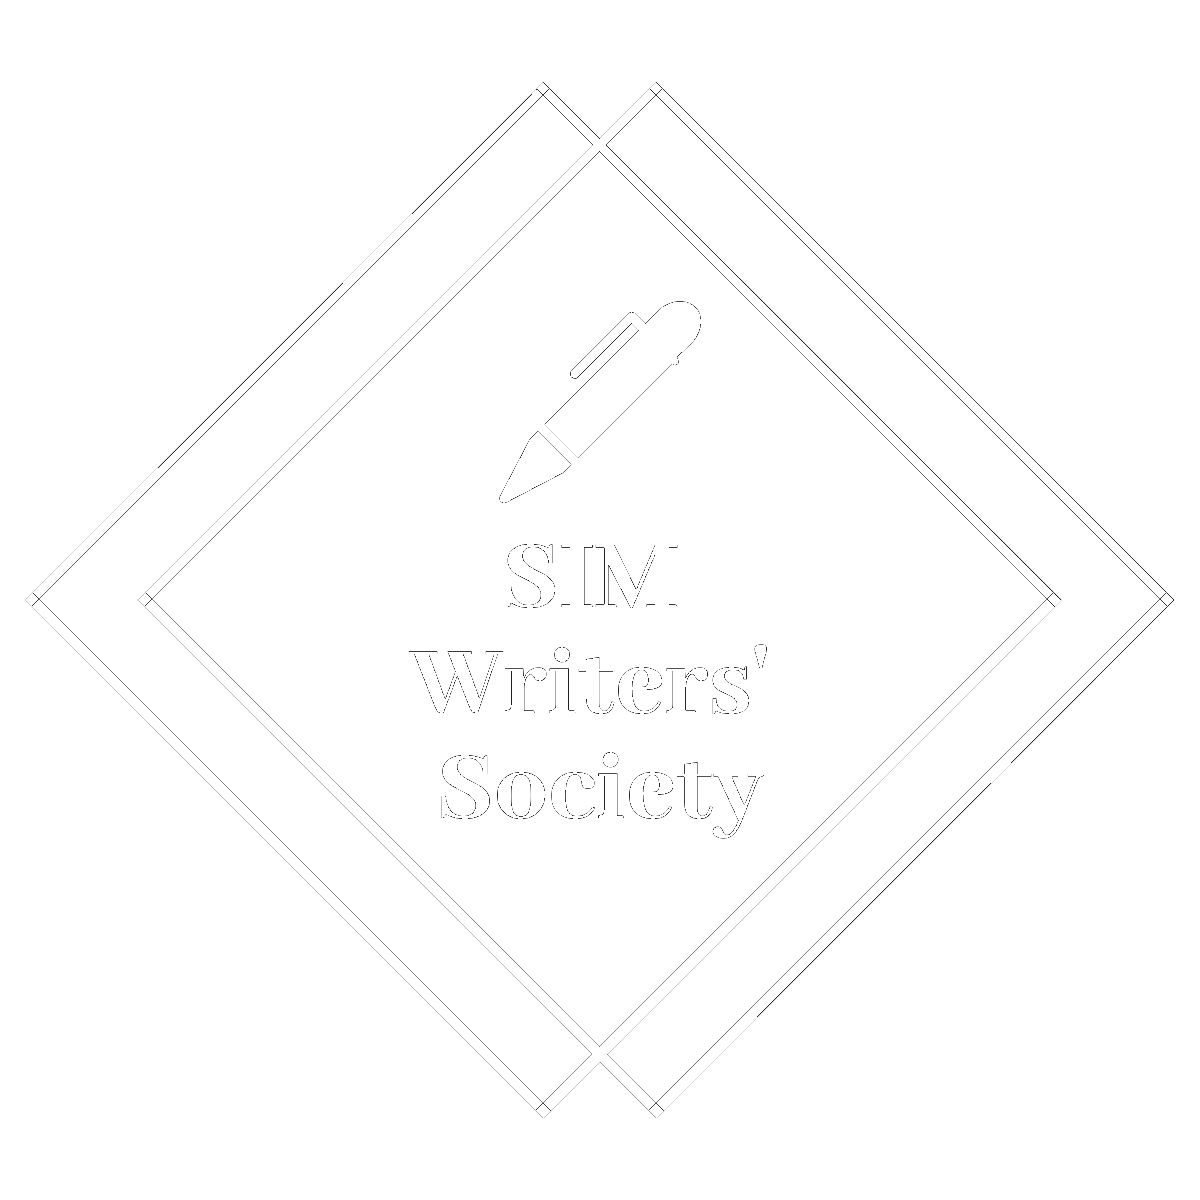 SIM Writers' Society